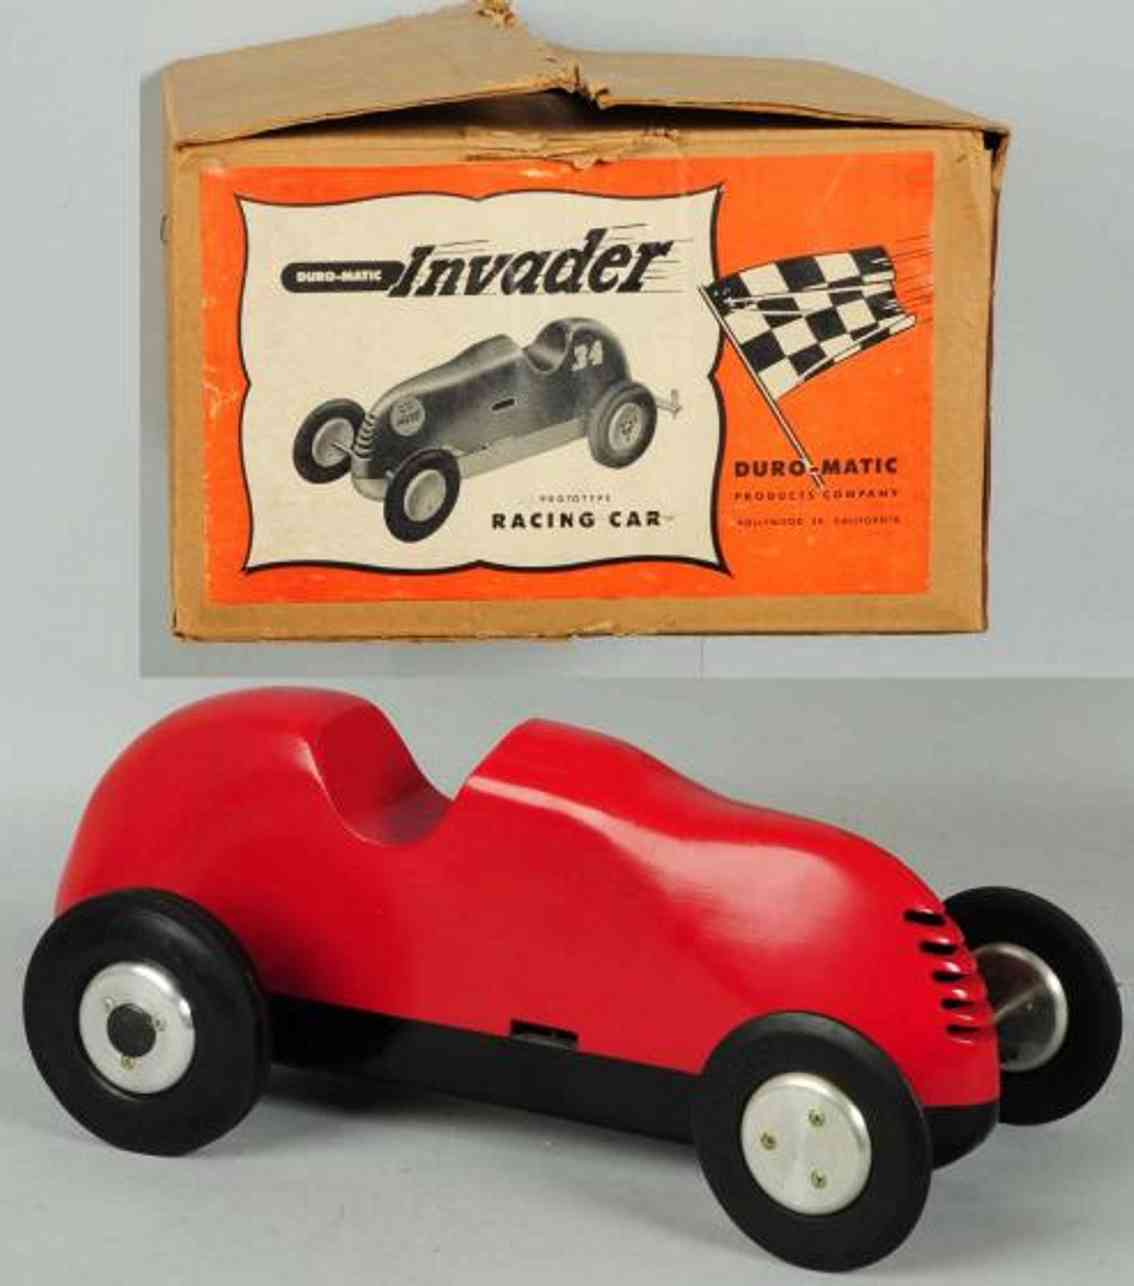 duro-matic products co pressed steel toy duro-matic invader race car